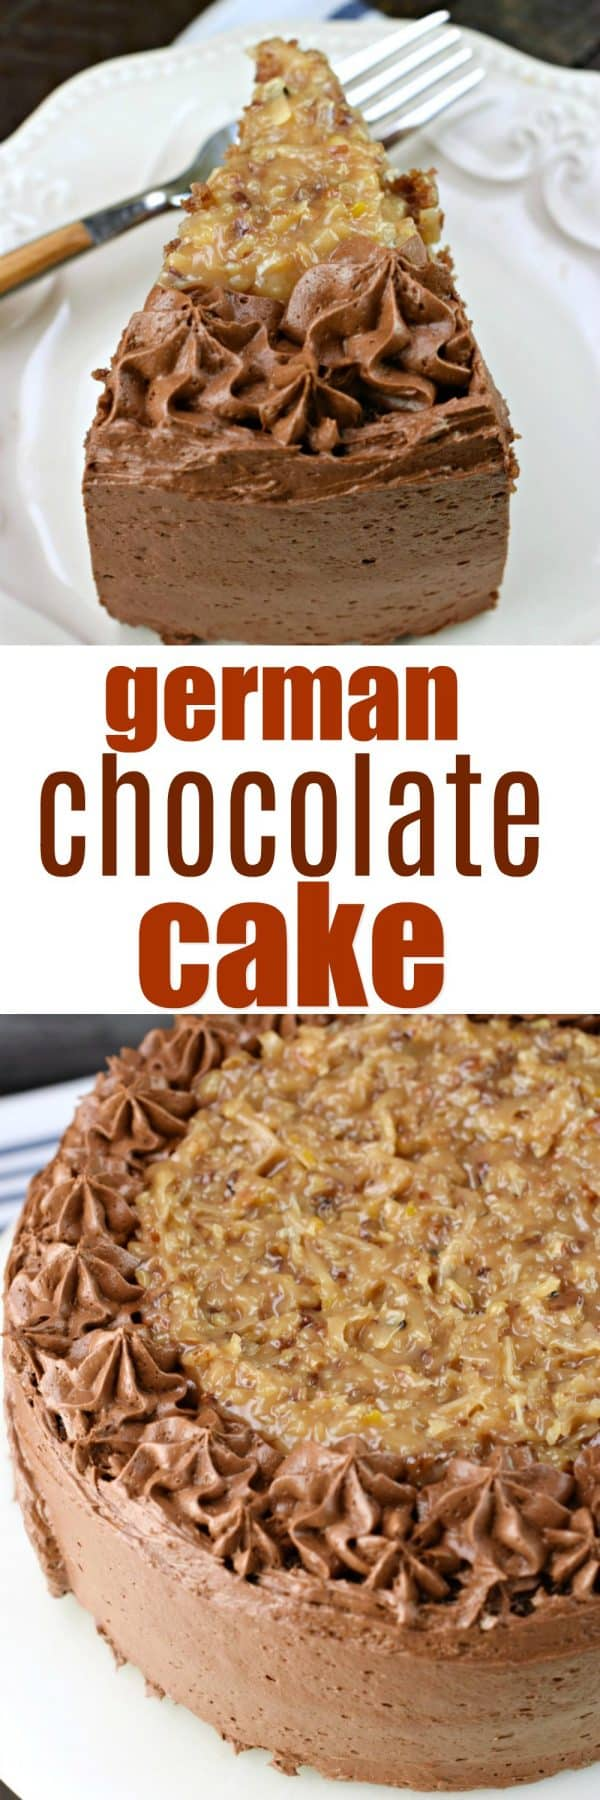 This German Chocolate Cake recipe, from scratch, is decadent and sweet with the rich chocolate cake layers topped with coconut pecan frosting! Add some chocolate buttercream frosting to put this cake recipe over the top!